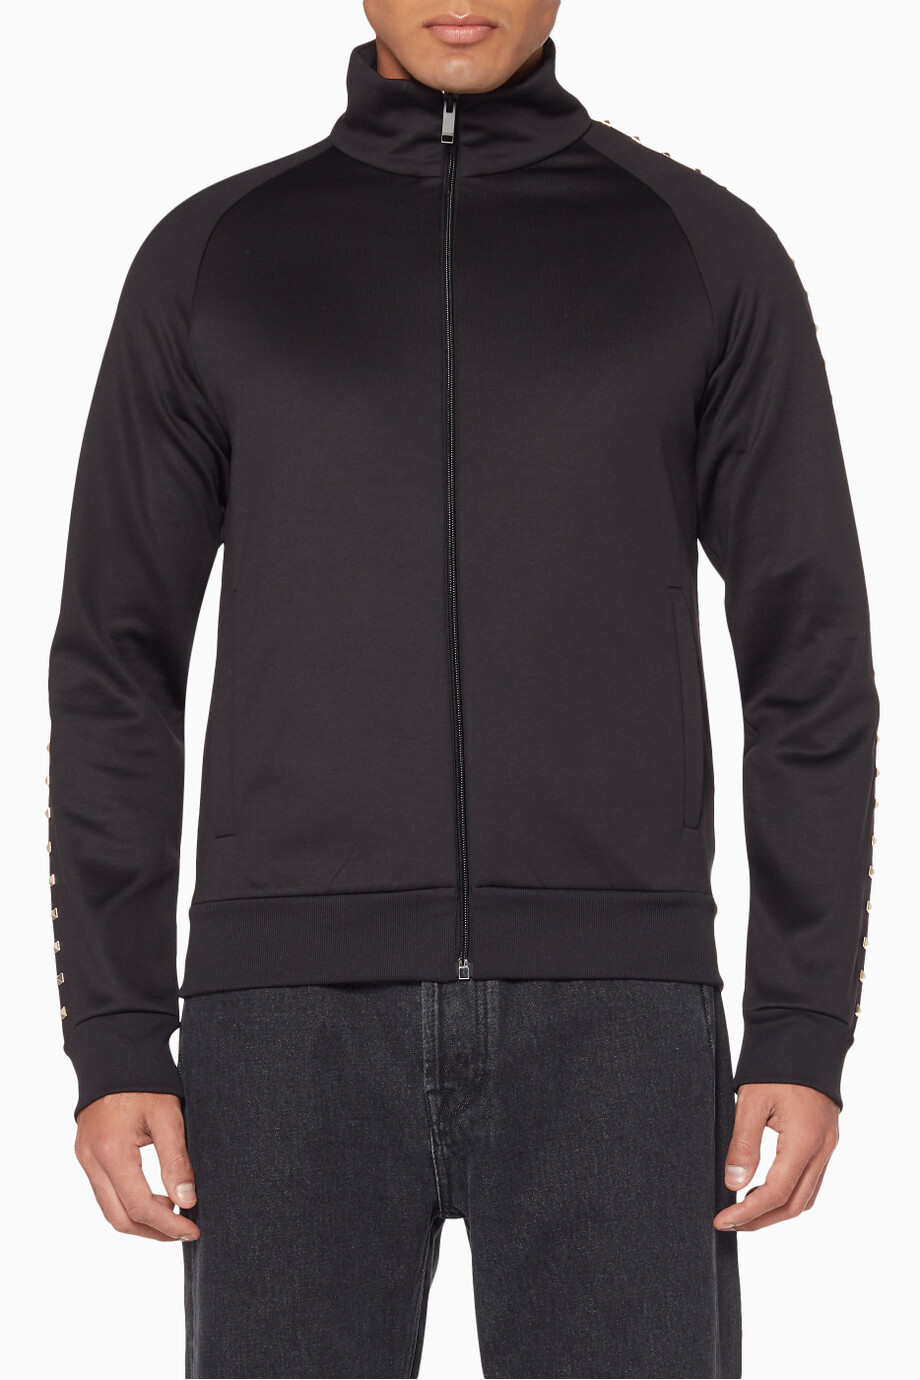 98b0917fa Shop Valentino Black Black Zip Funnel Neck Sweatshirt for Men ...